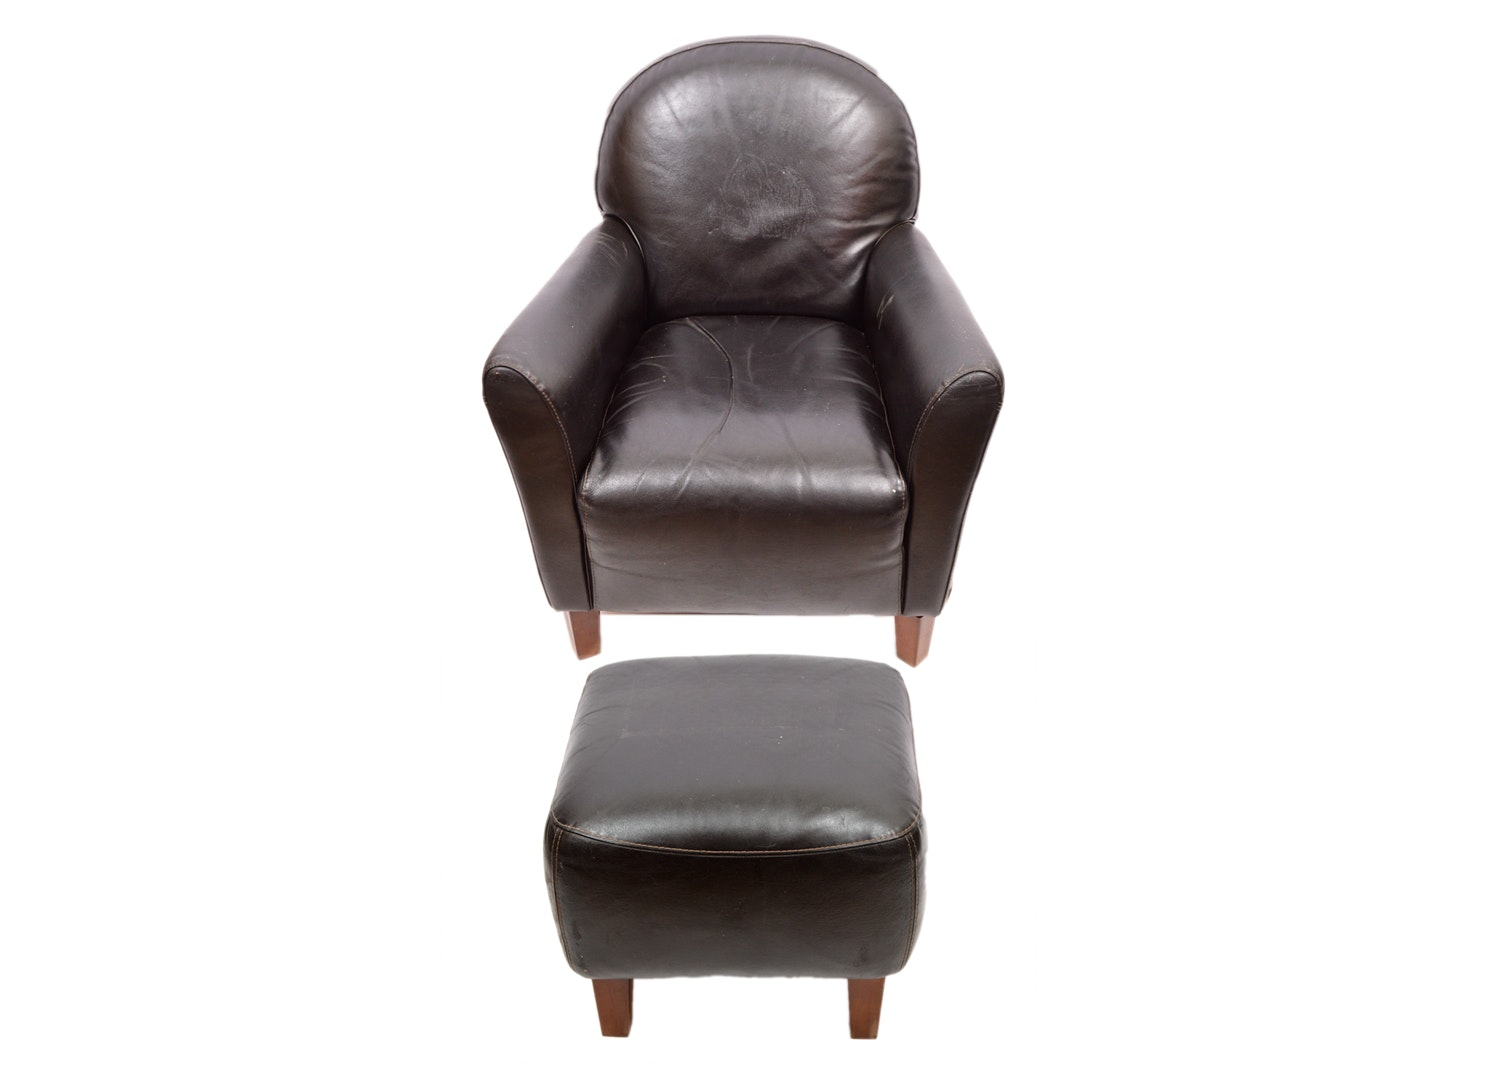 Faux Leather Armchair and Ottoman by Calia Salotti